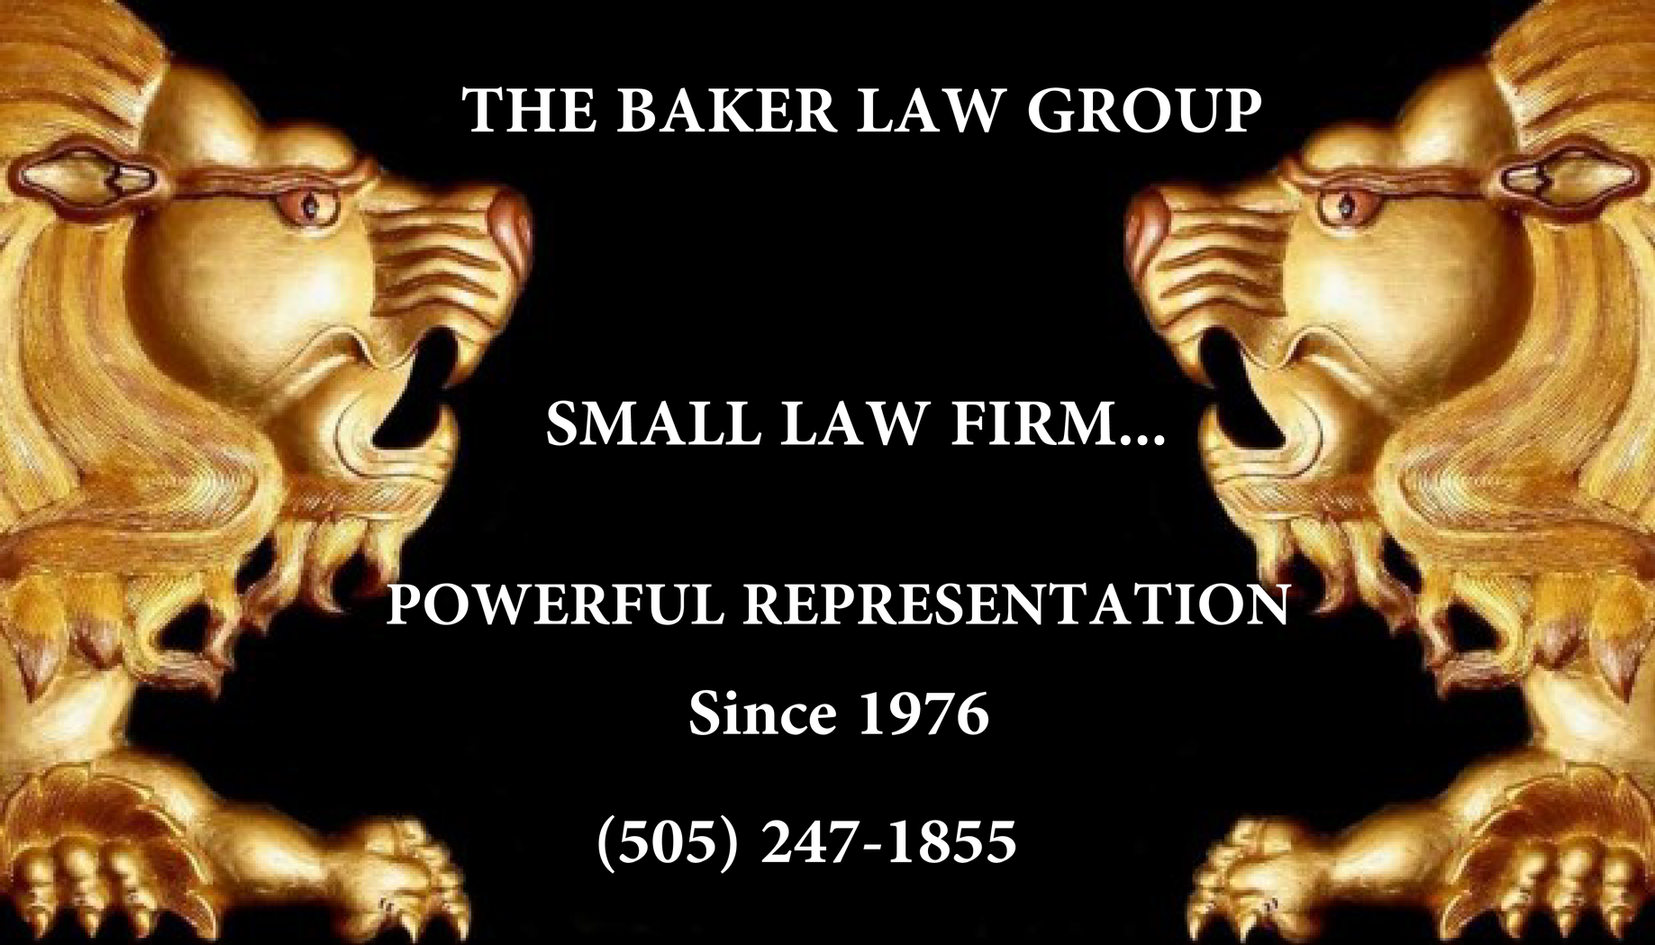 The Baker Law Group